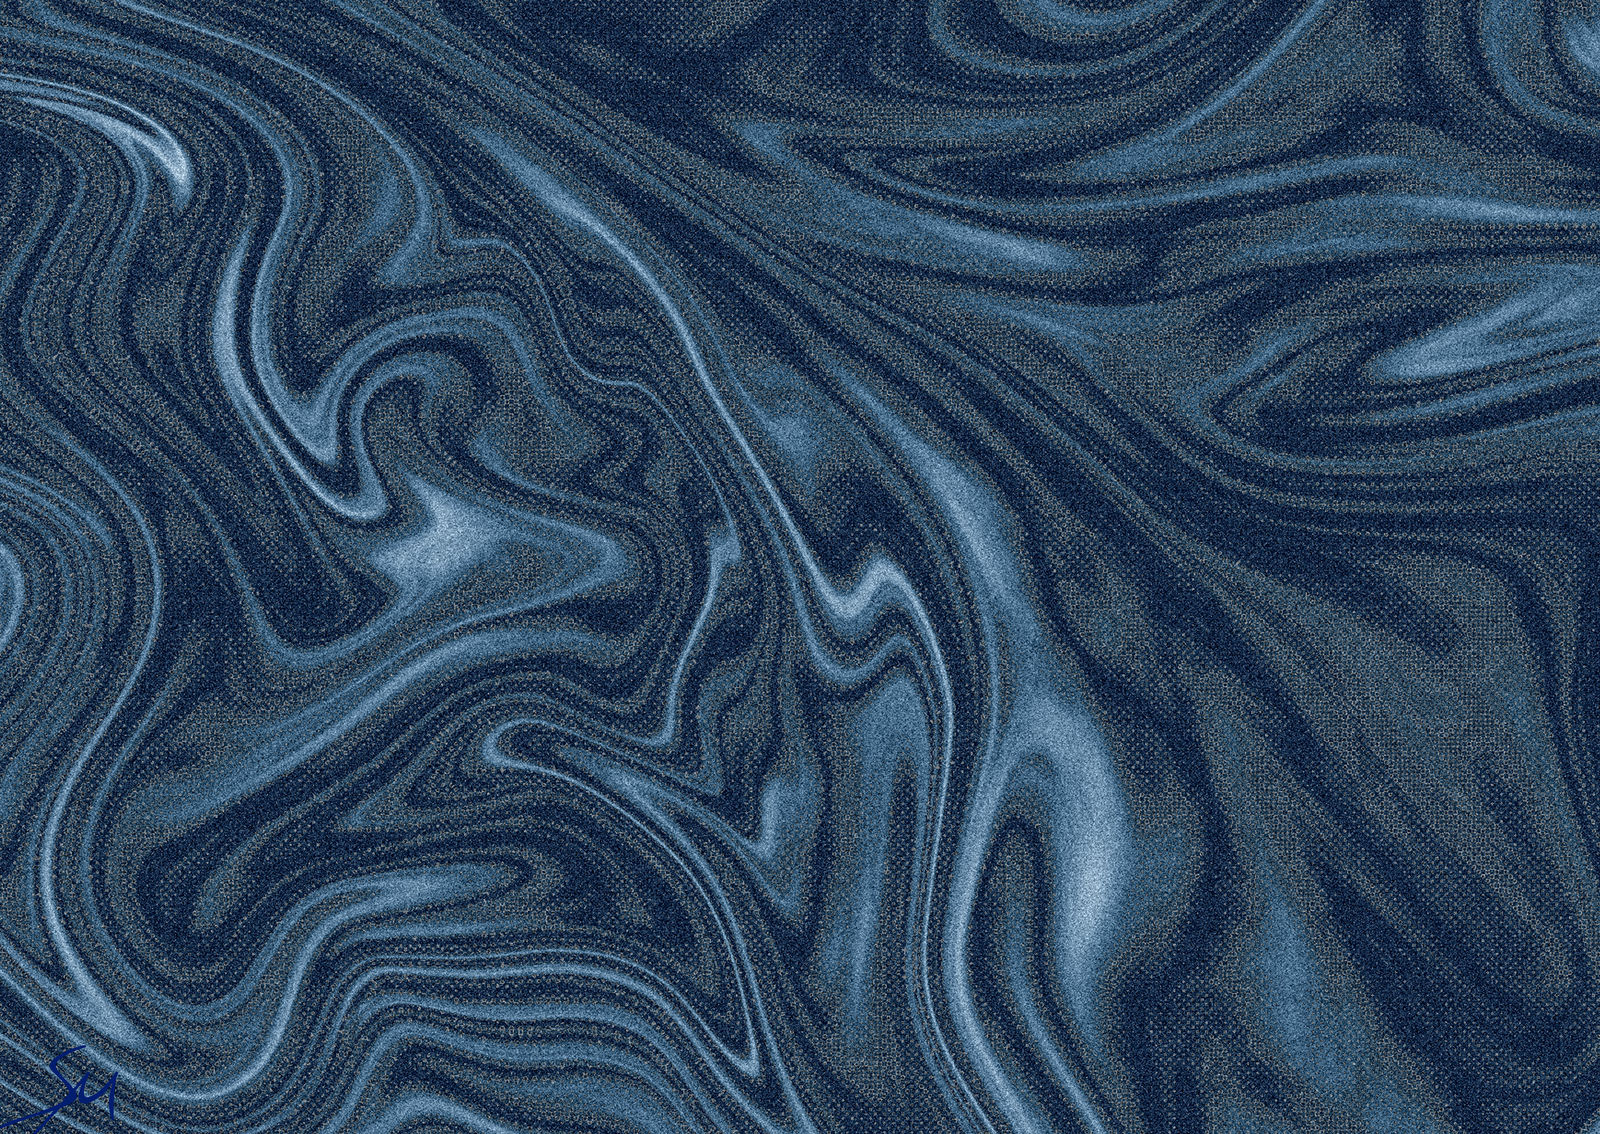 Liquified Clouds 0507